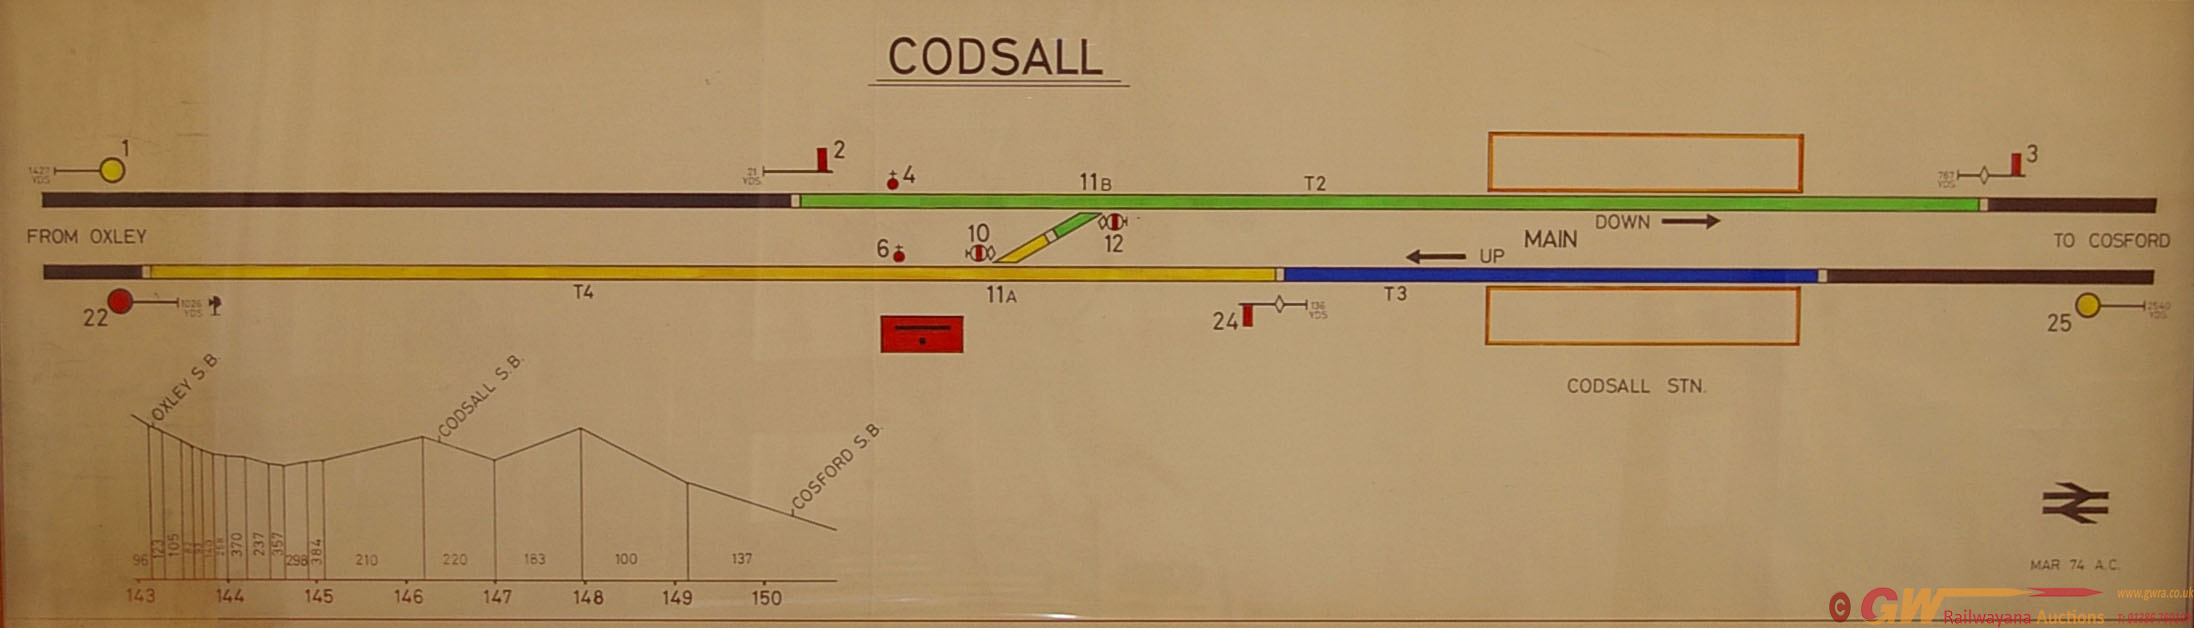 Signal Box Diagram CODSALL. Situated Between Oxley